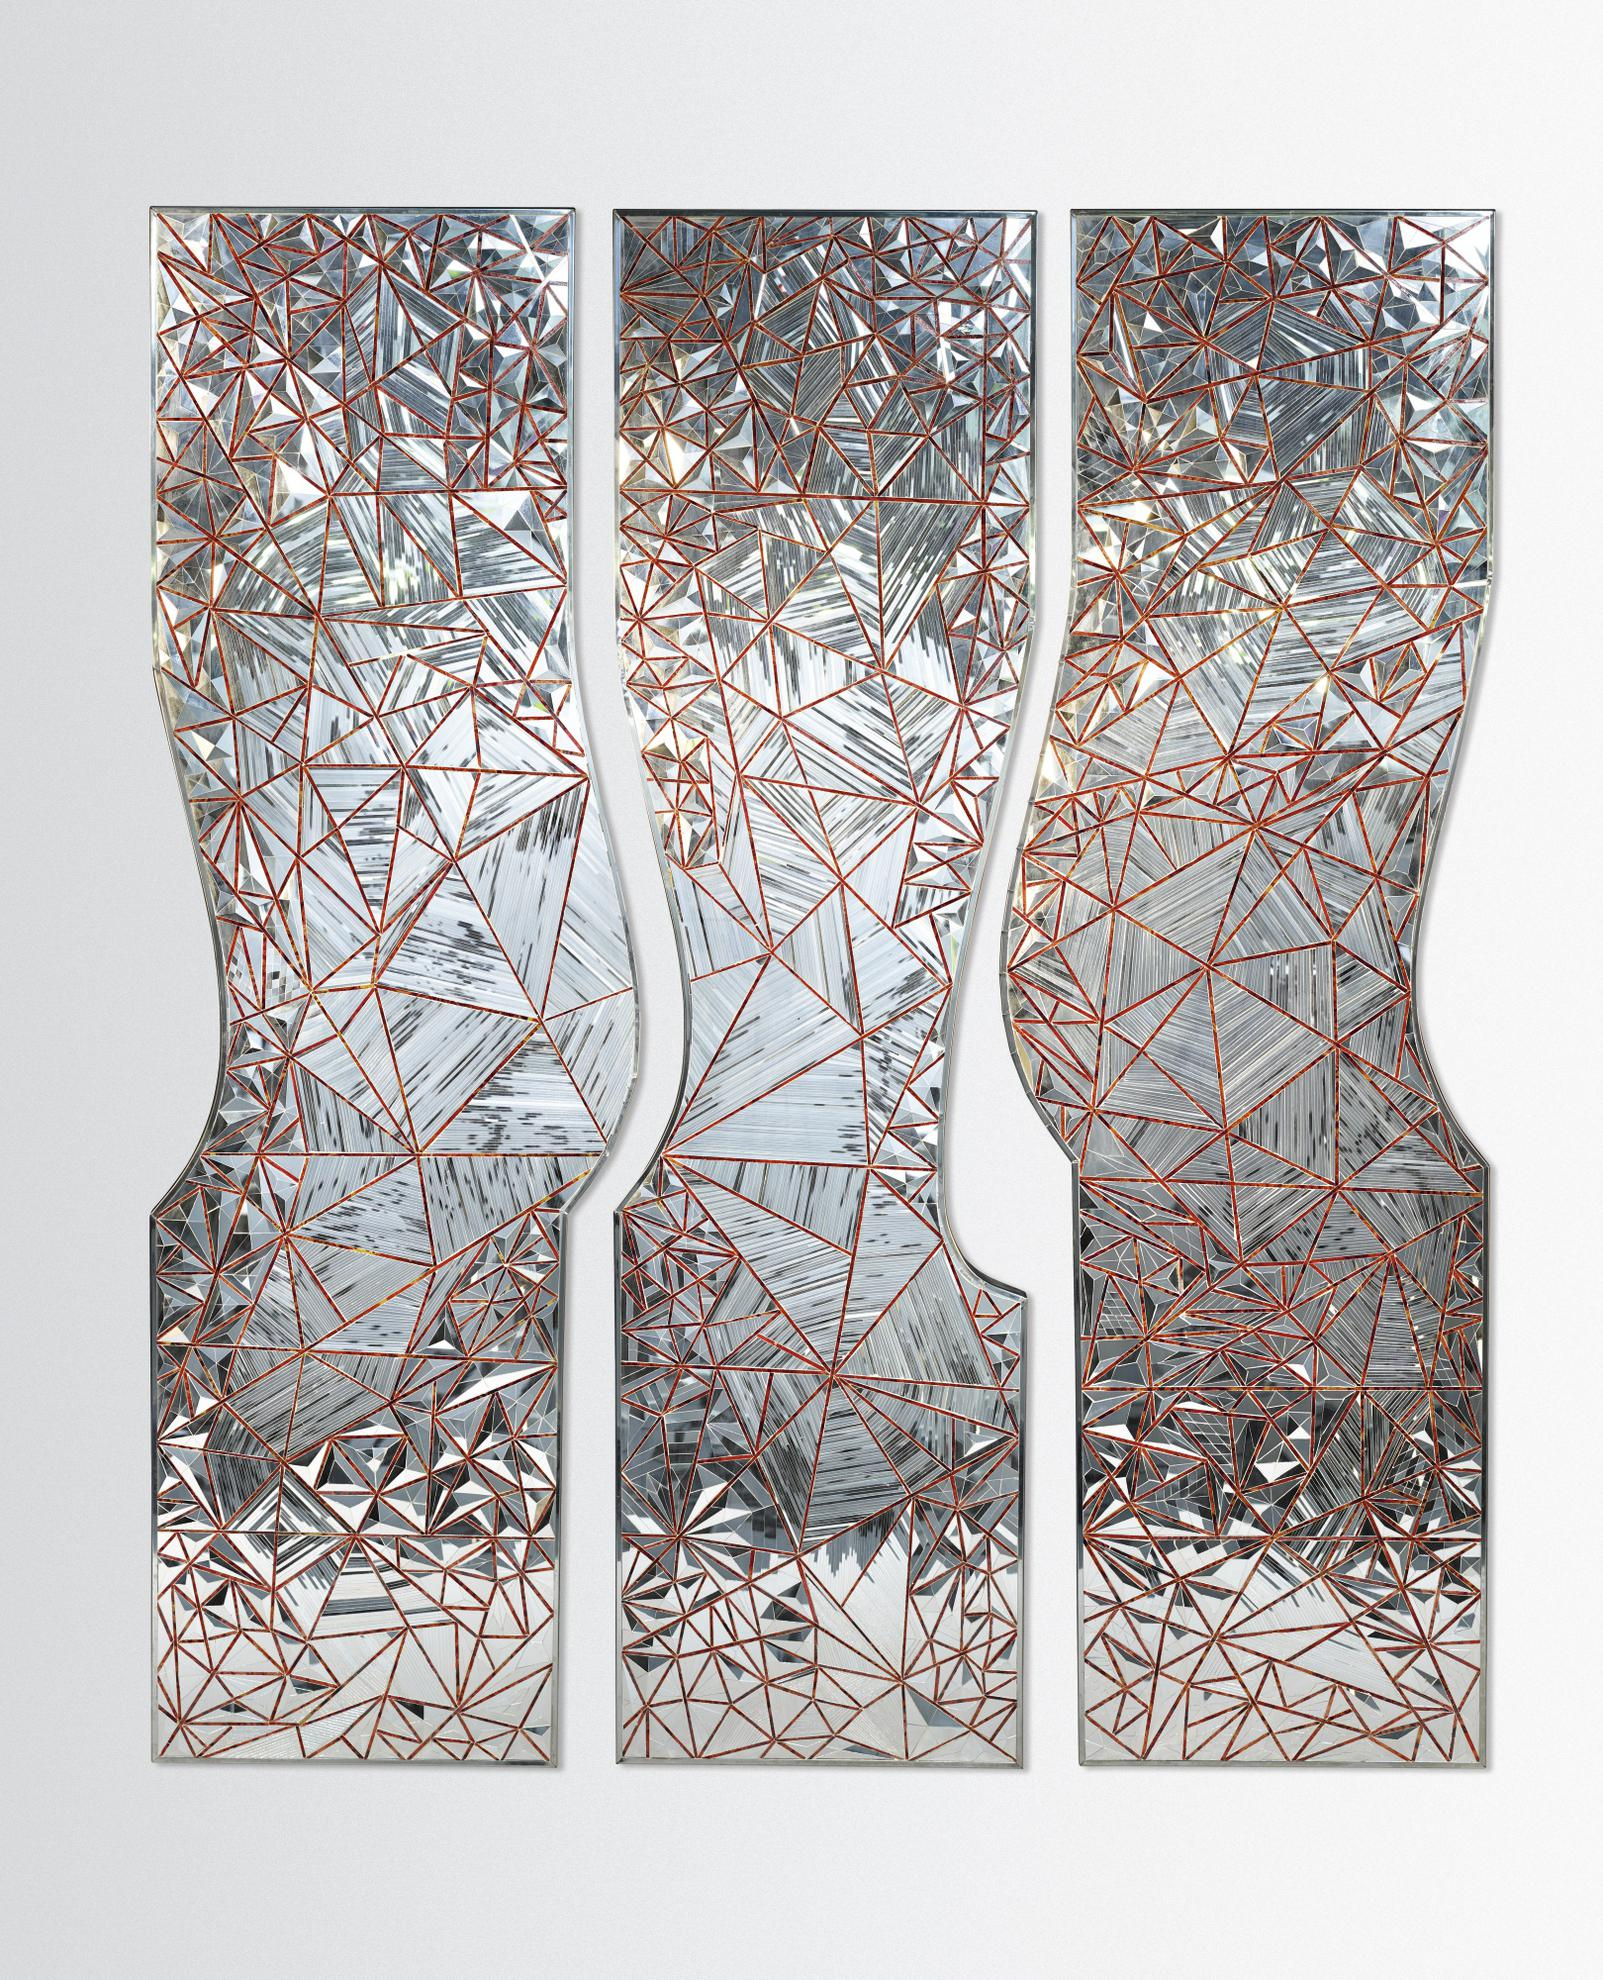 Monir Farmanfarmaian - Three Graces-2008